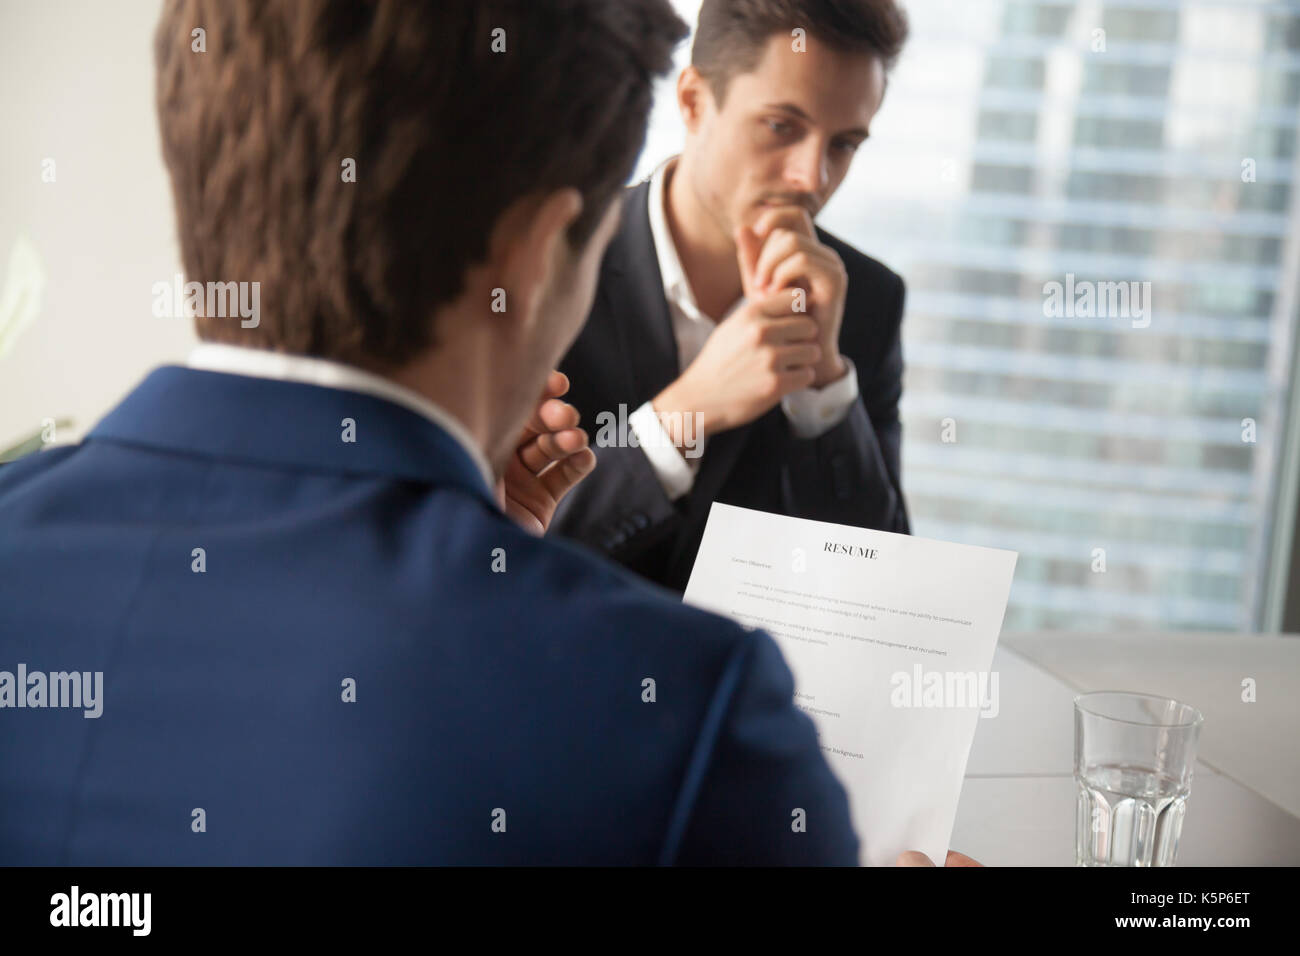 Hiring manager reading job candidates resume - Stock Image